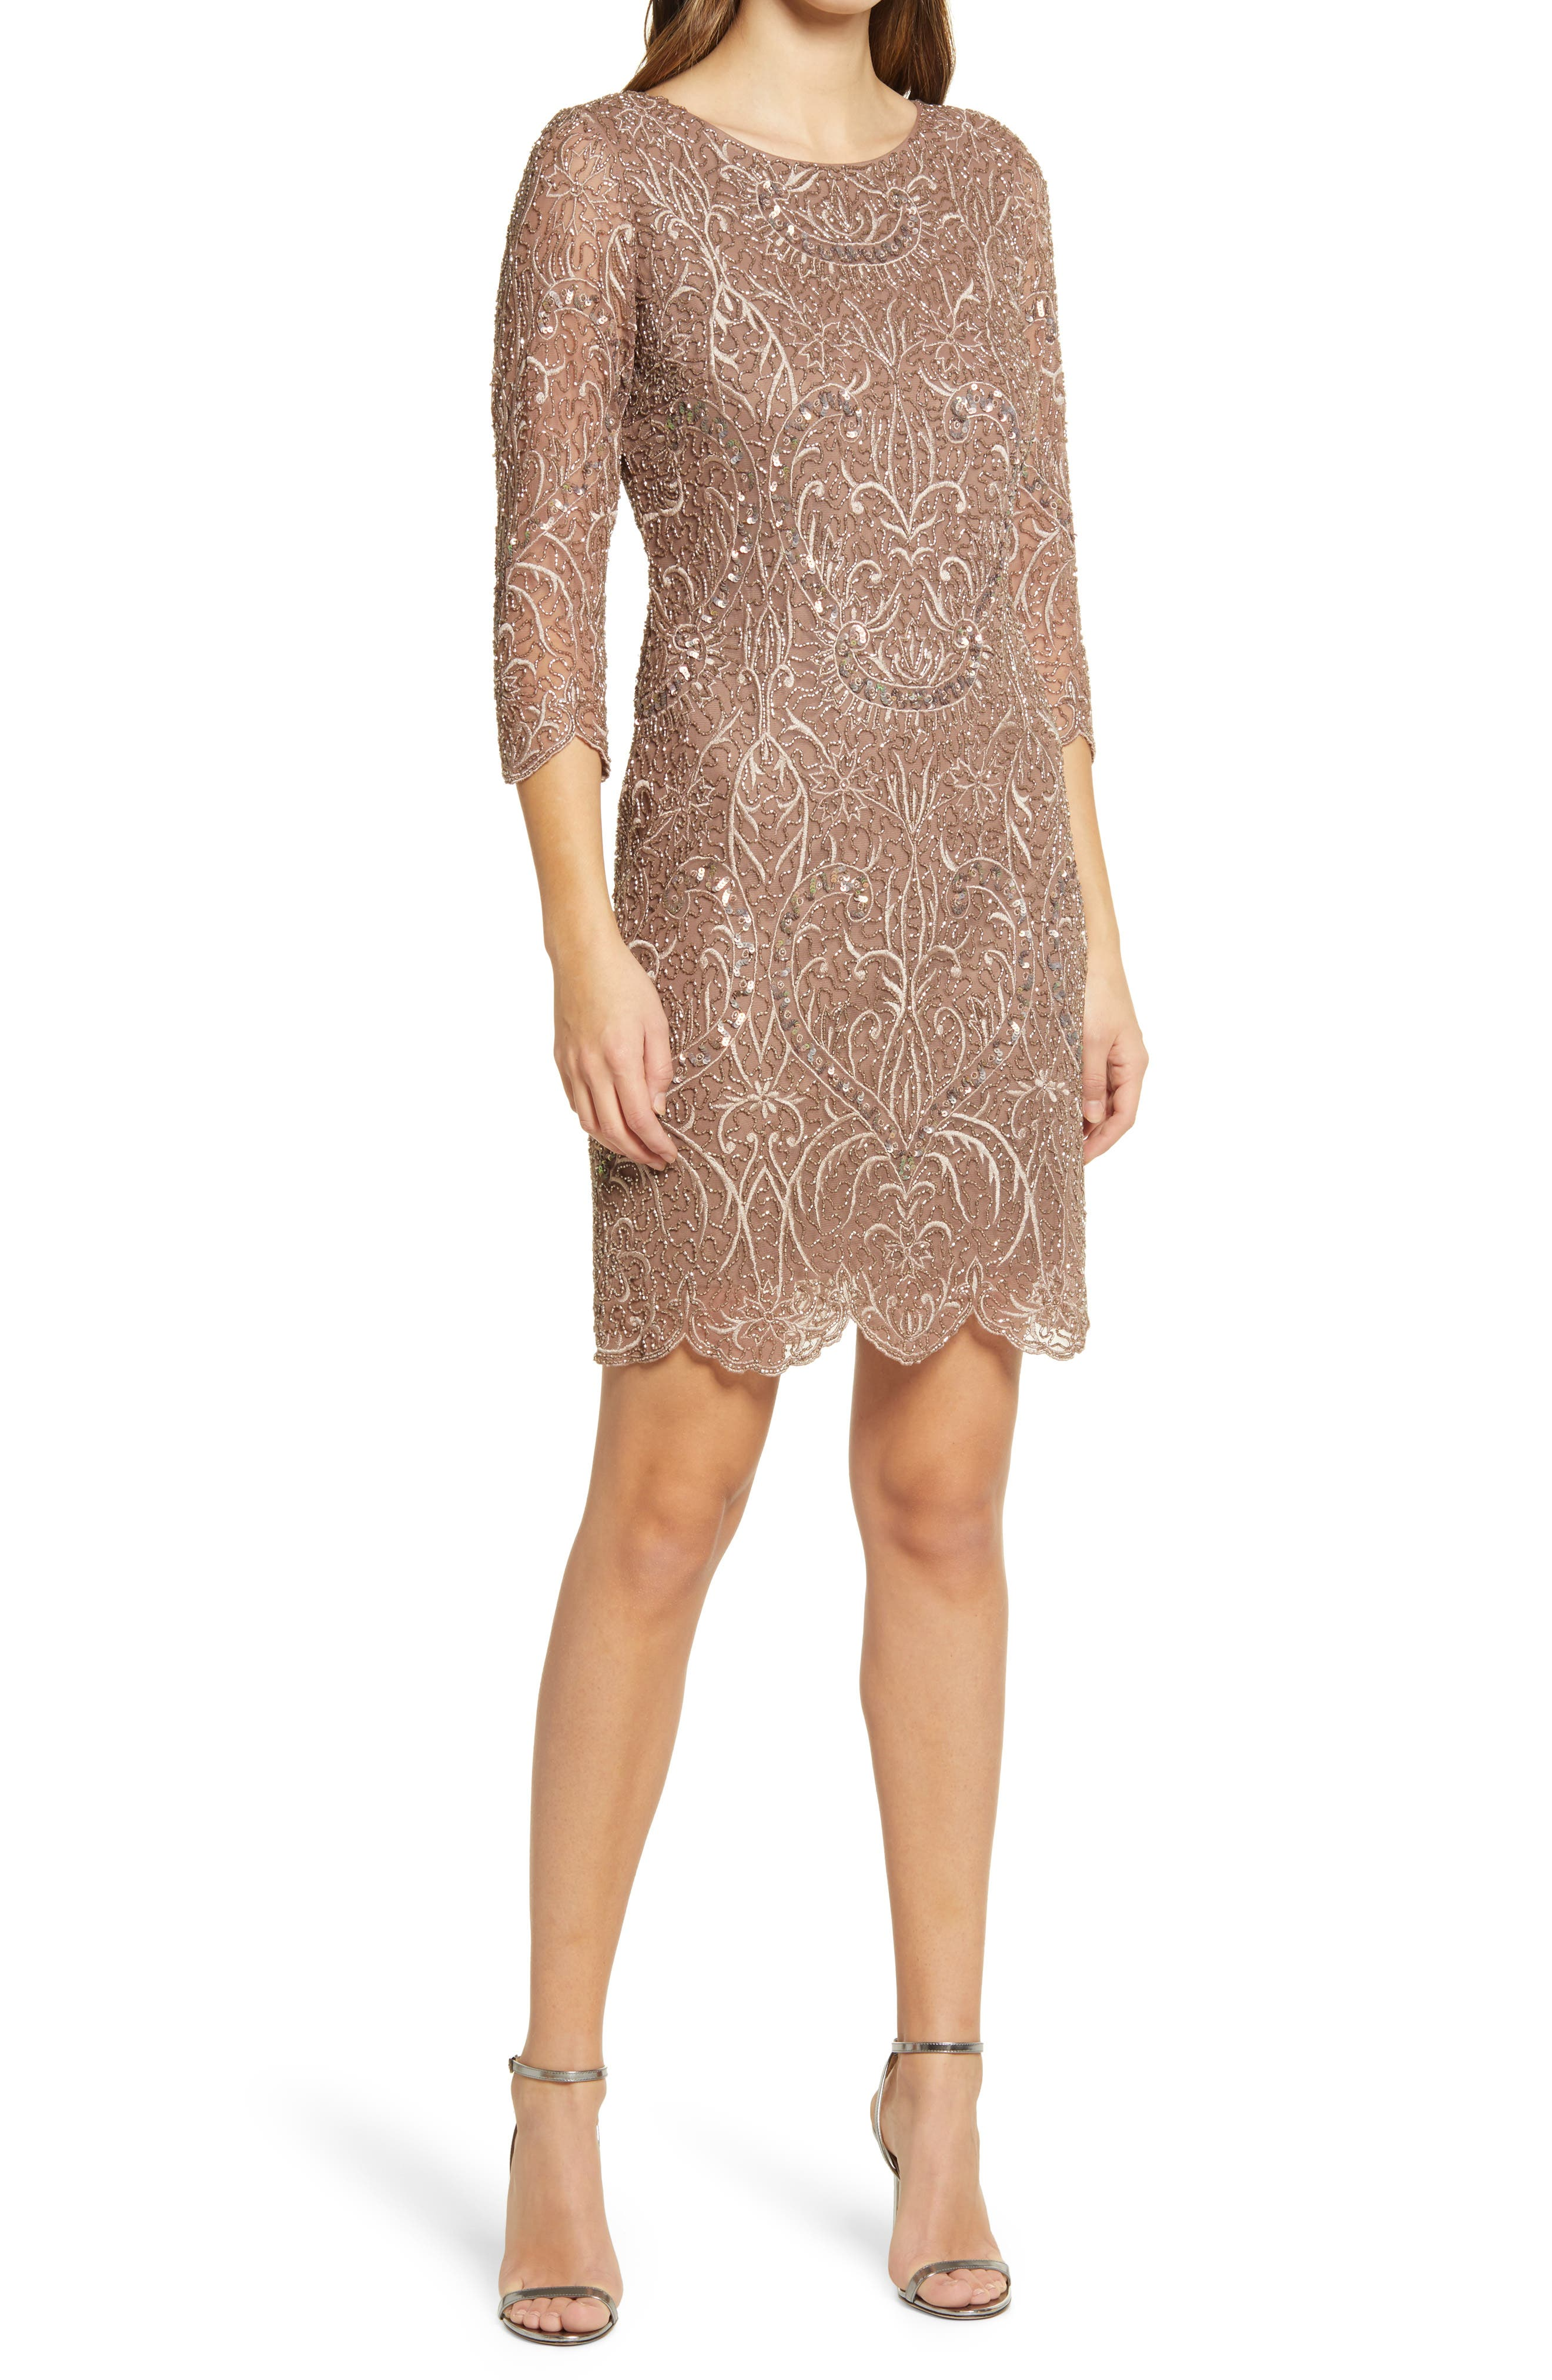 Roaring 20s Costumes- Flapper Costumes, Gangster Costumes Womens Pisarro Nights Embroidered Cocktail Dress Size 18 - Beige $218.00 AT vintagedancer.com